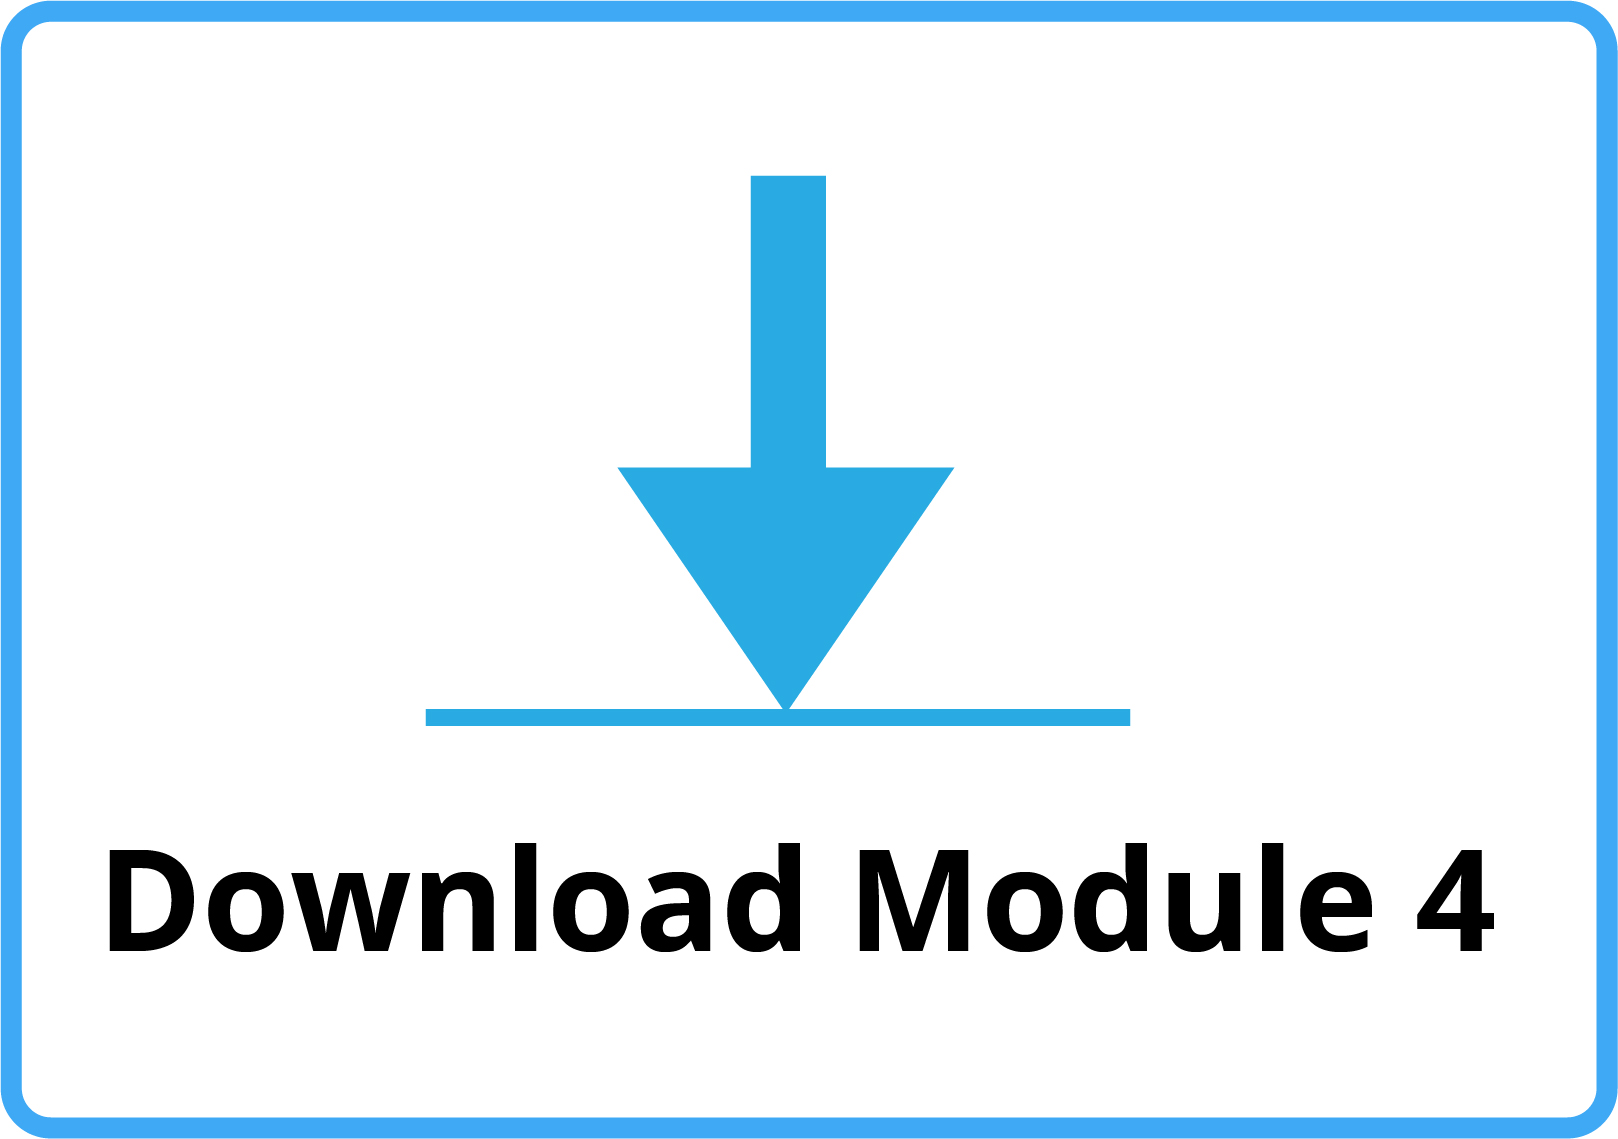 Download Module 4